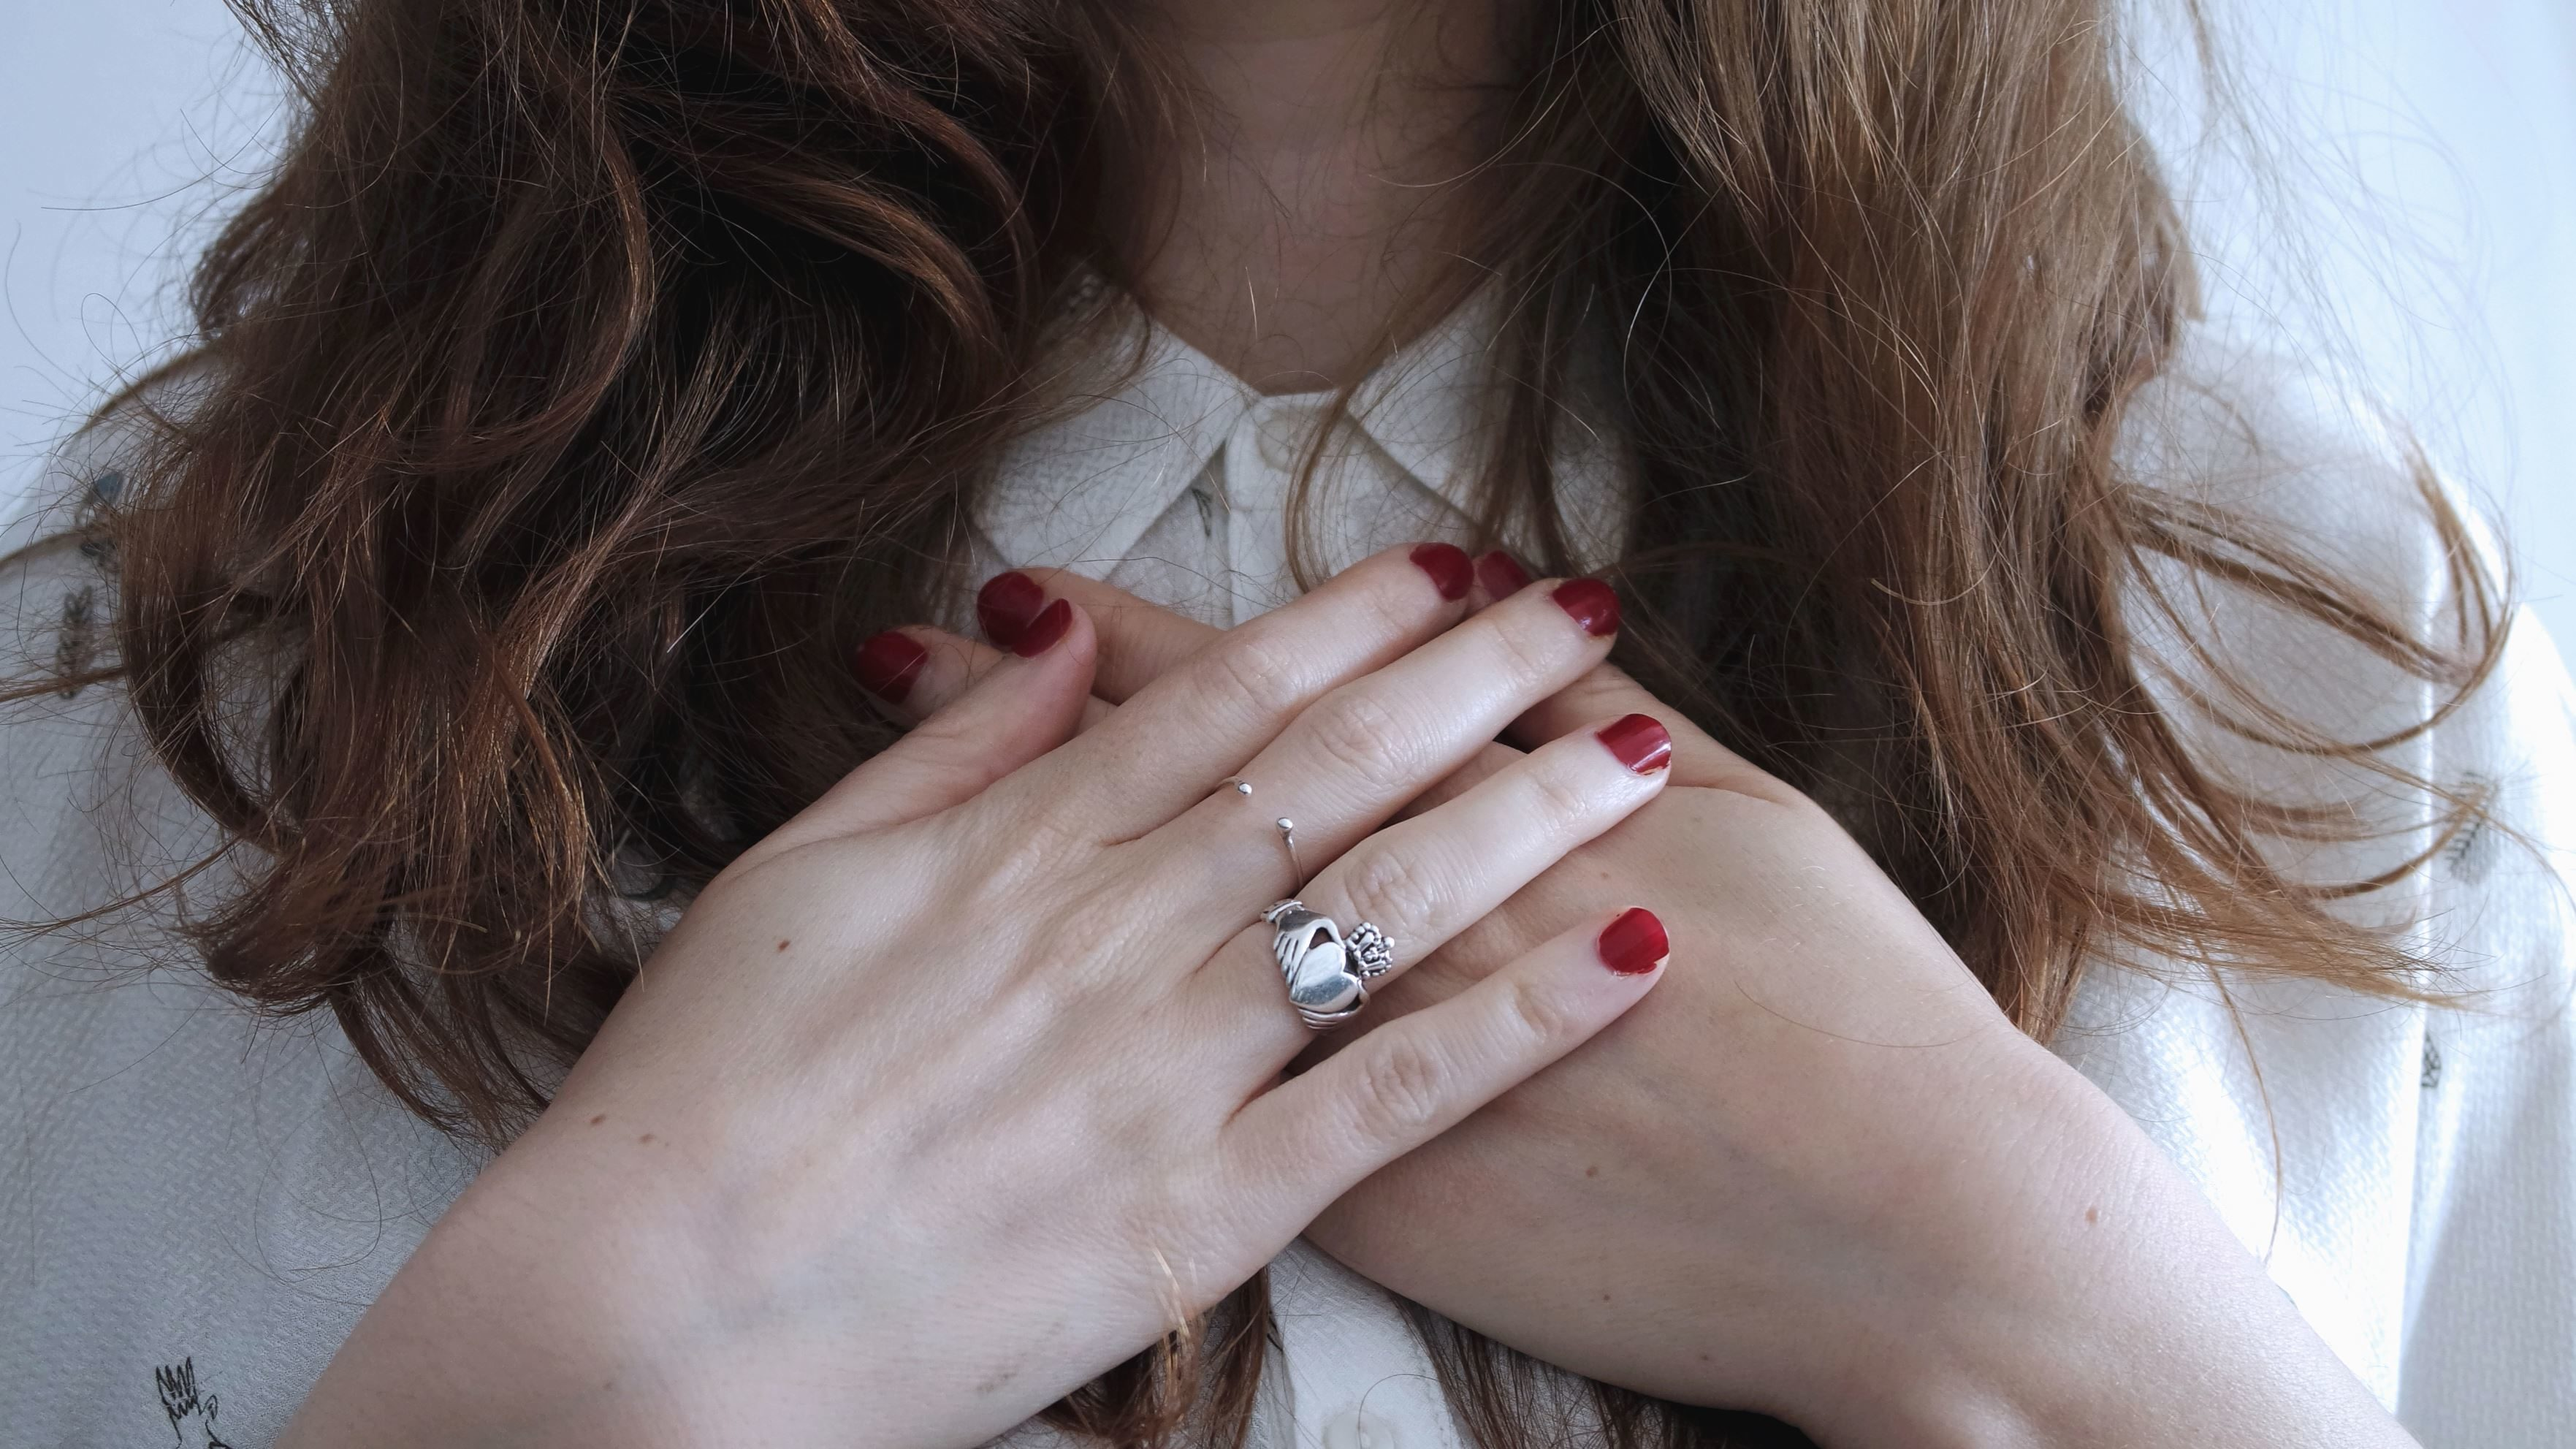 Free picture: hand, finger, ring, girl, hair, shirt, nail